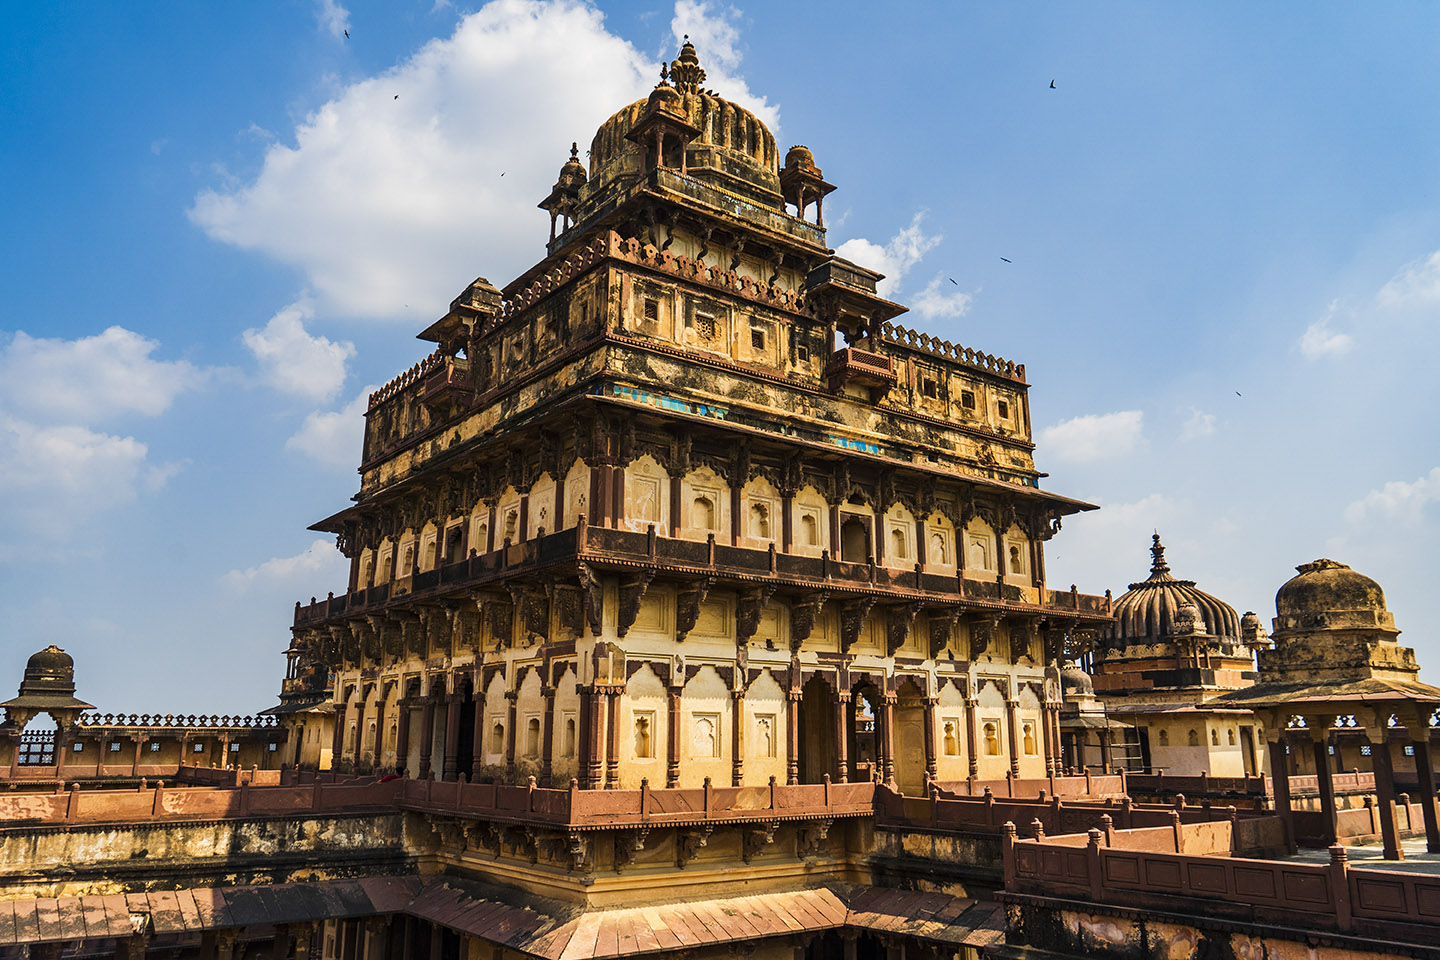 The palace is a seven-storeyed structure that is built with only stone and bricks and without using  wood or iron